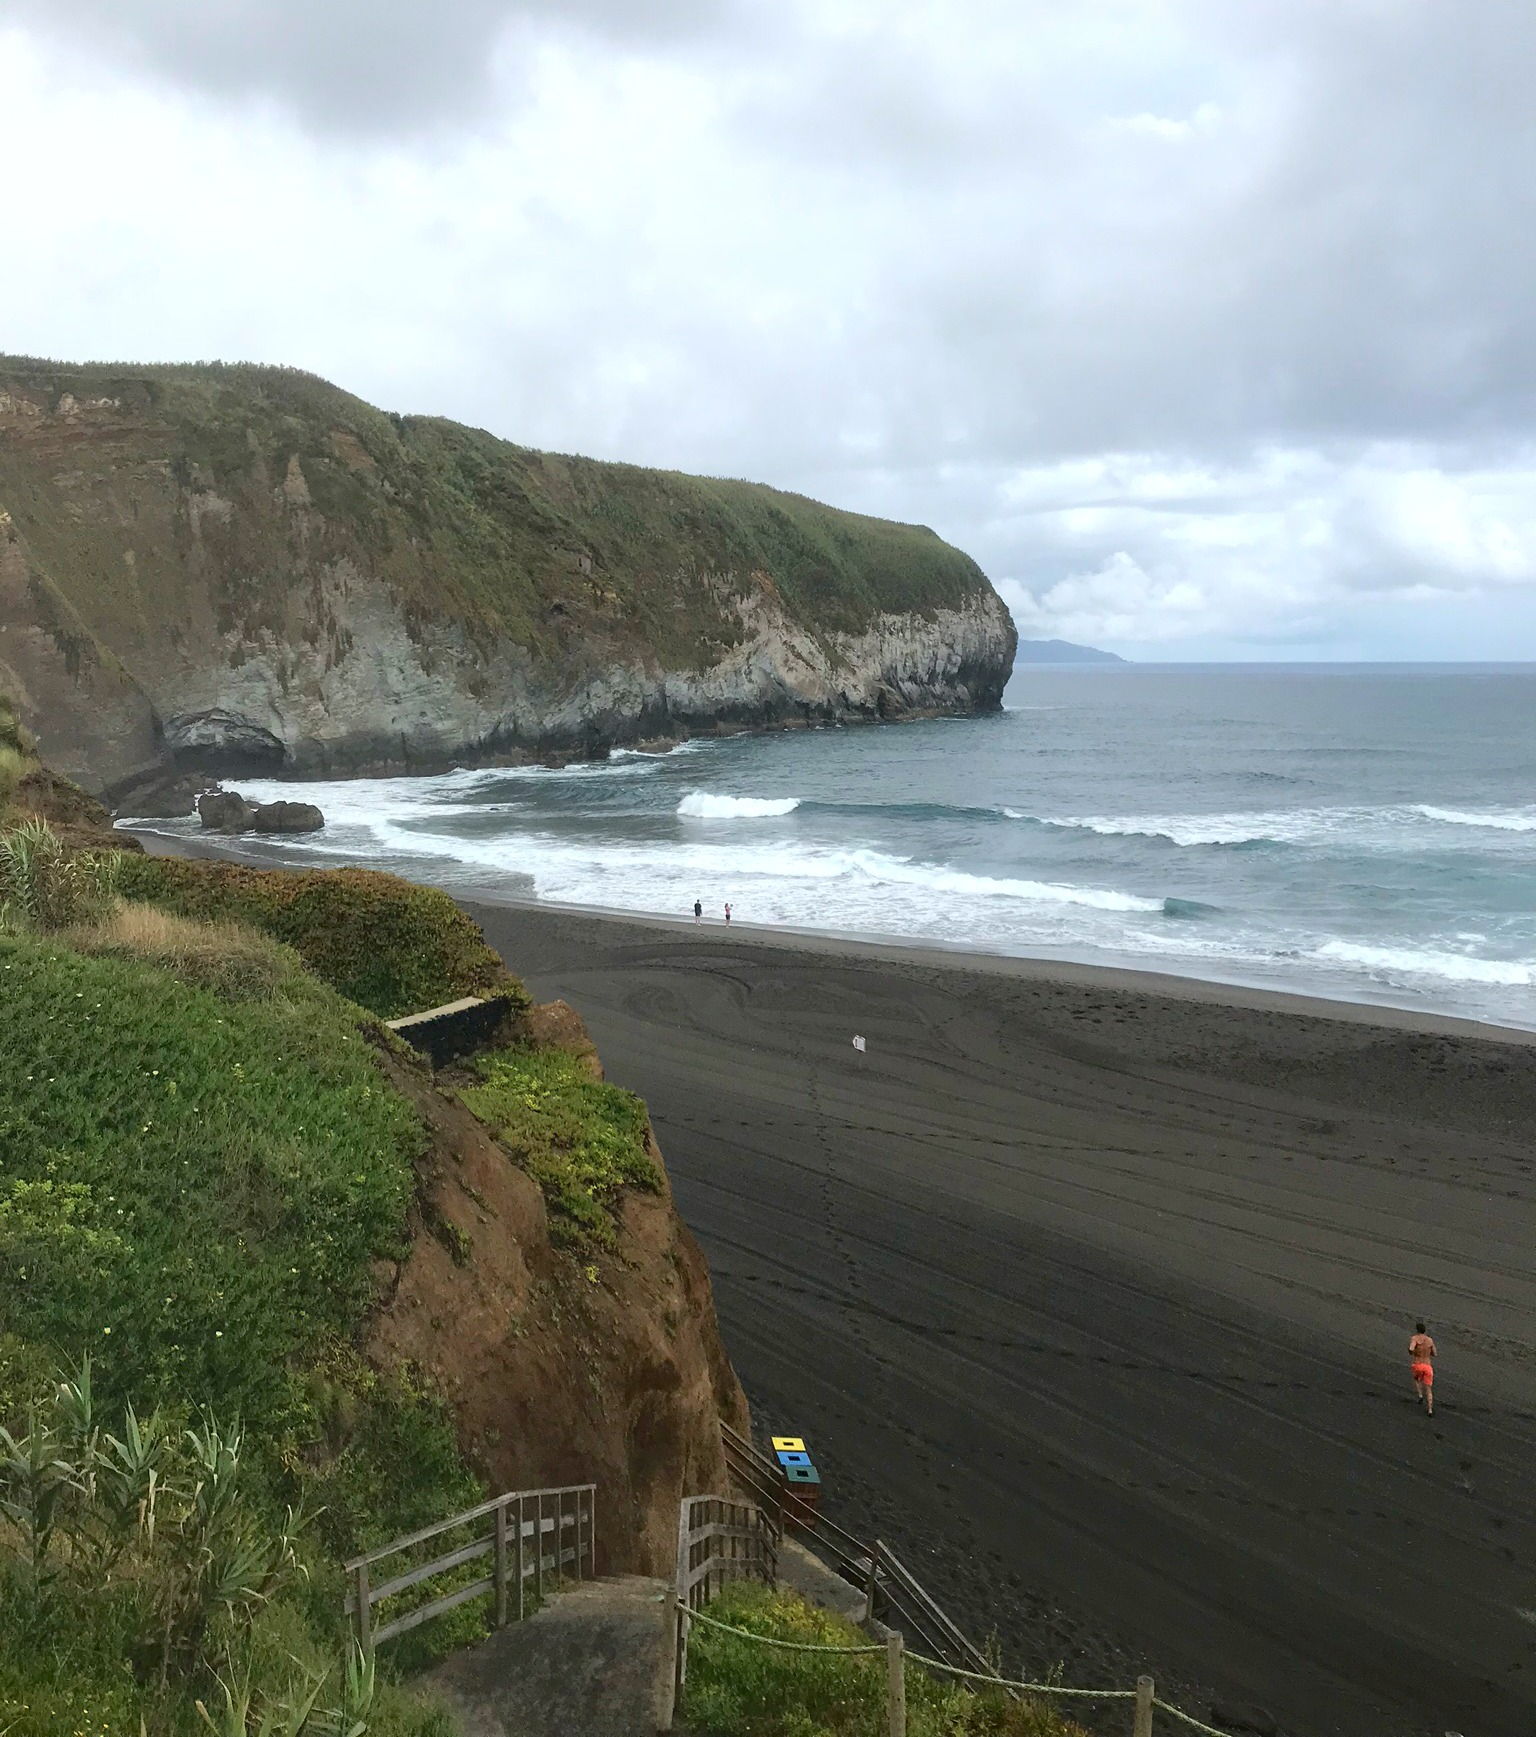 view of Santa Barbara Azores surf break from the cliffs